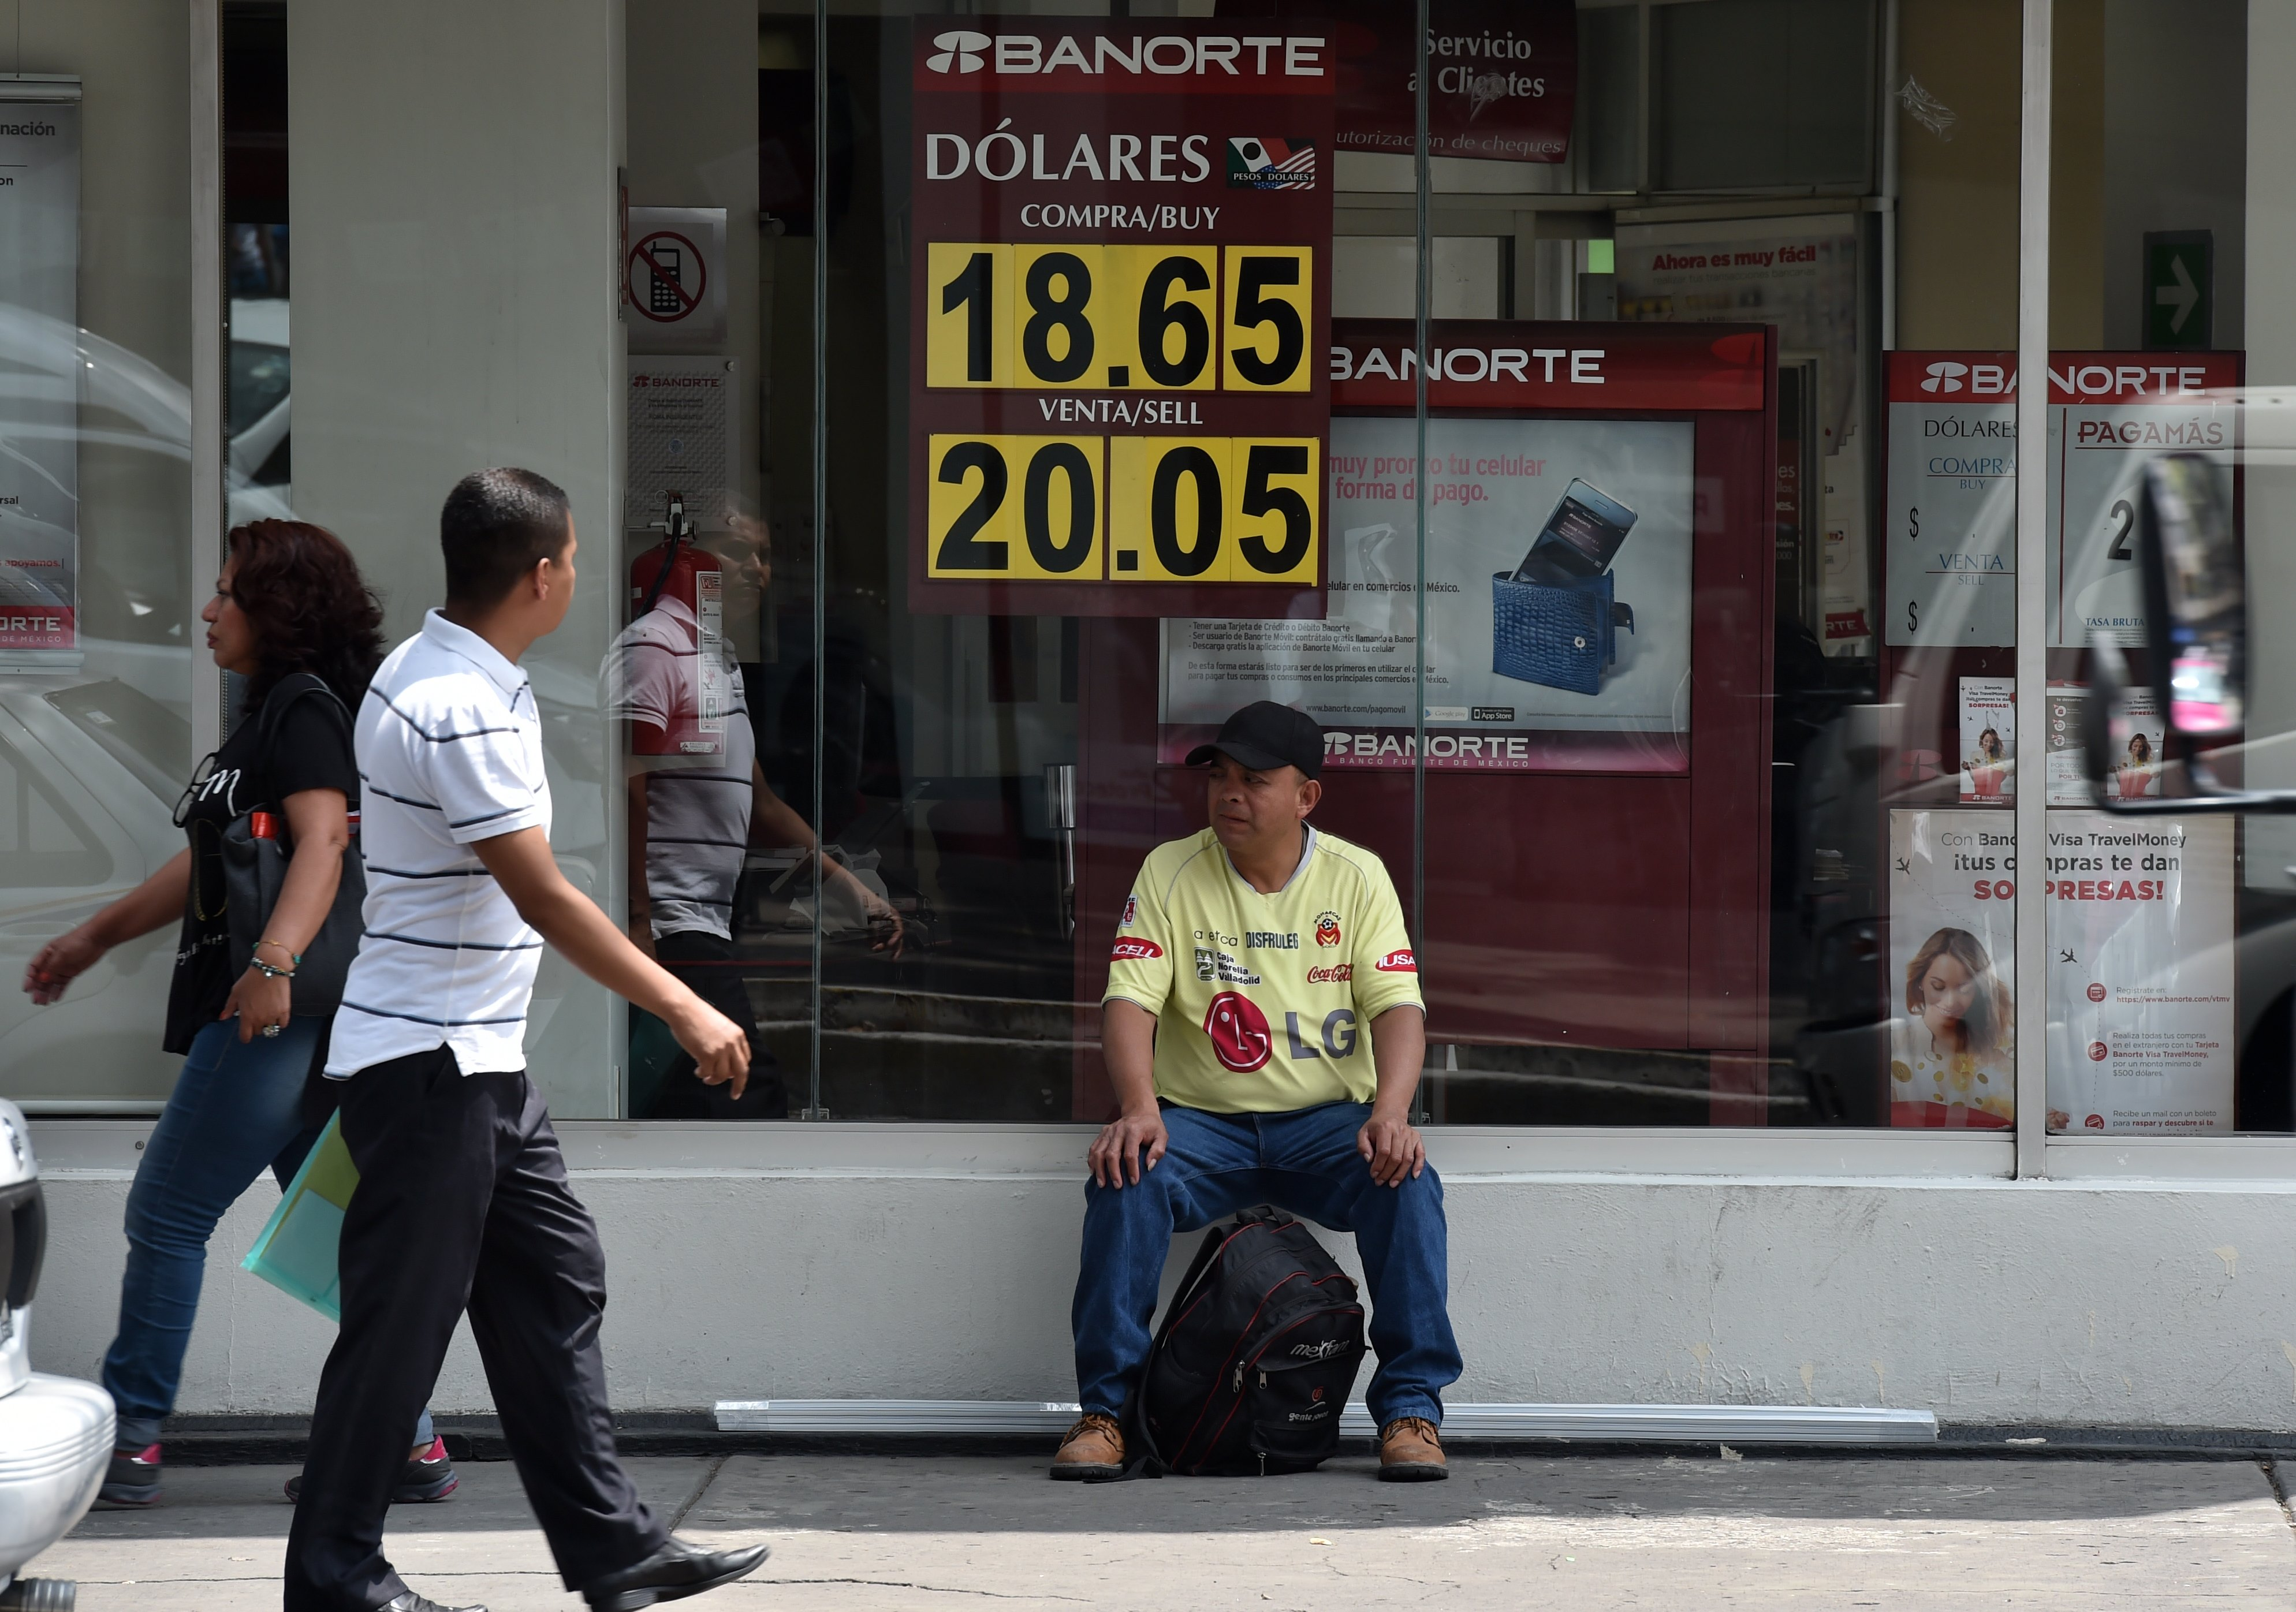 The currency board of a bank in the financial system shows the dollar exchange rate, in Mexico City, on September 22, 2016.